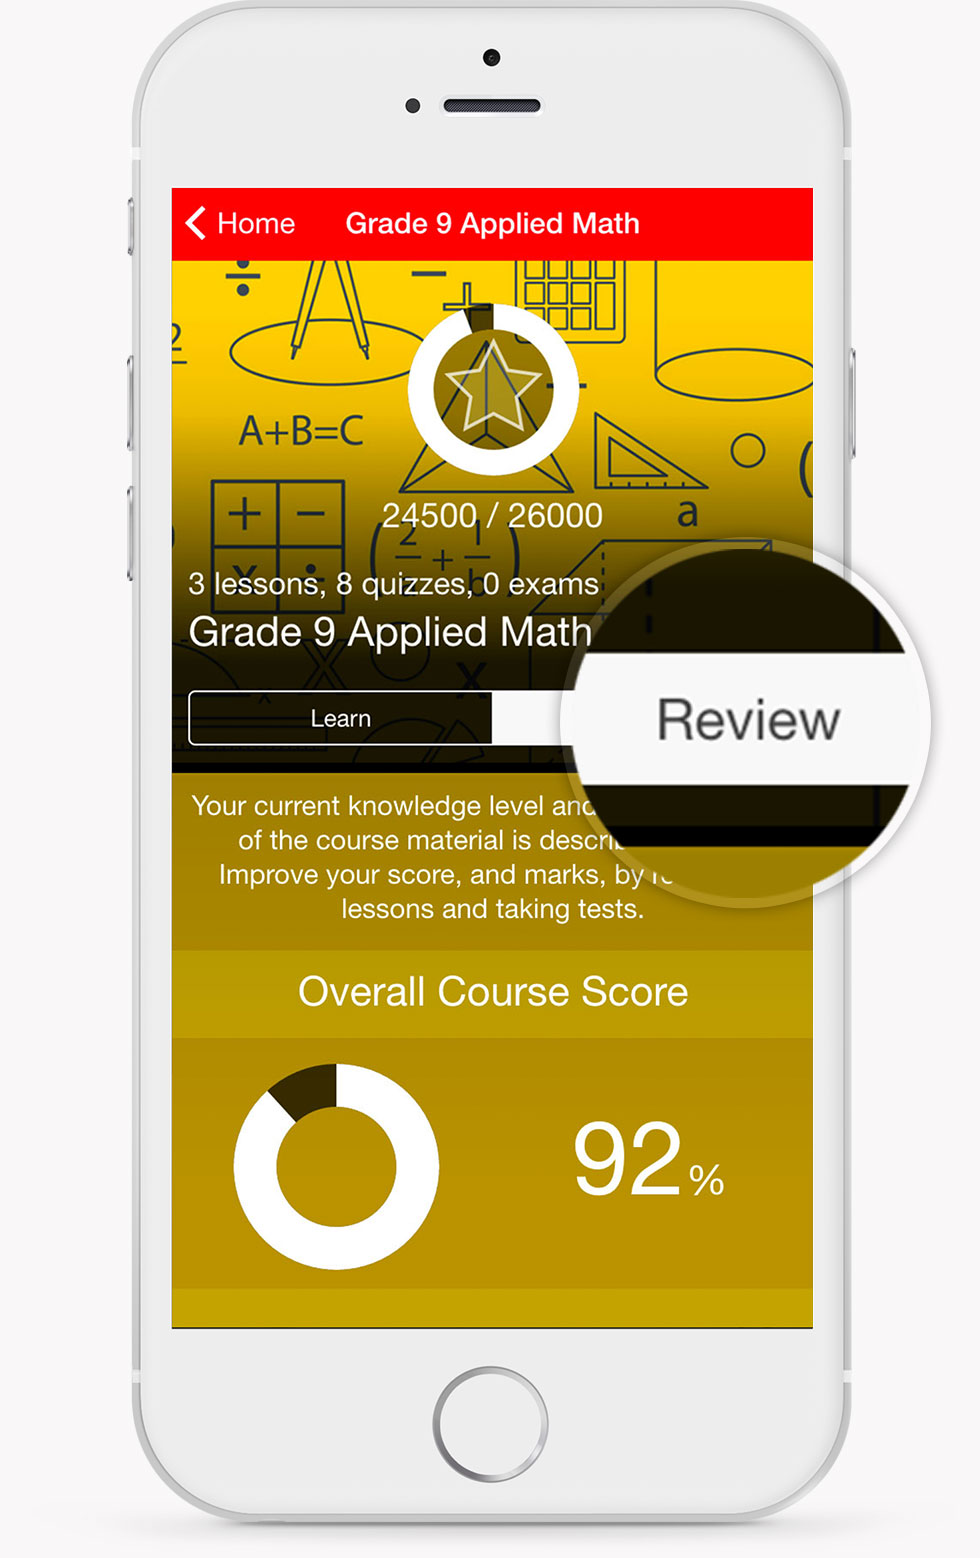 Grade 9 Applied Math Review Screen